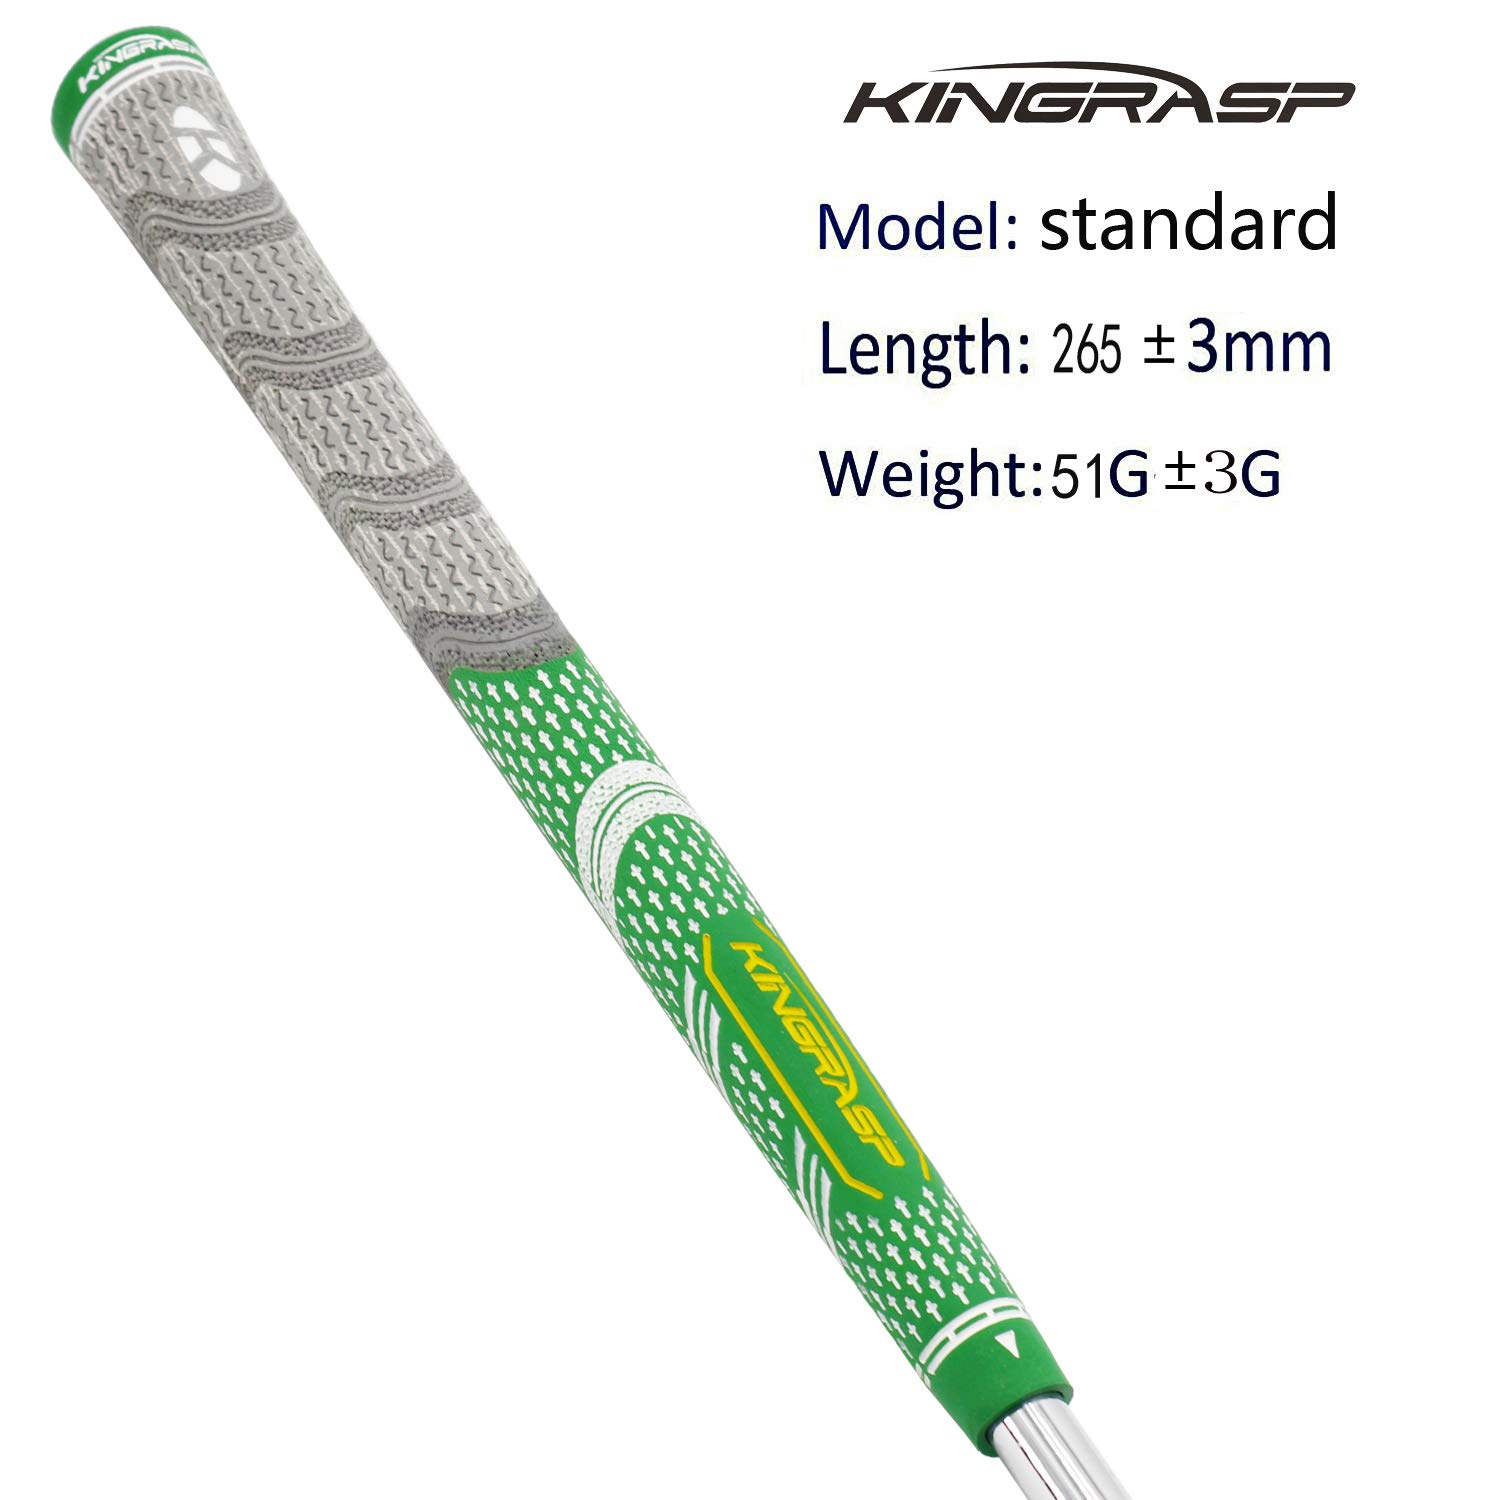 KINGRASP Multi Compound Golf Grips Set of 13 Golf Grip Standard midsize Size - All Weather Rubber Golf Club Grips Ideal for Clubs Wedges Drivers Irons Hybrids (Gray/Green, Standard) by KINGRASP (Image #2)